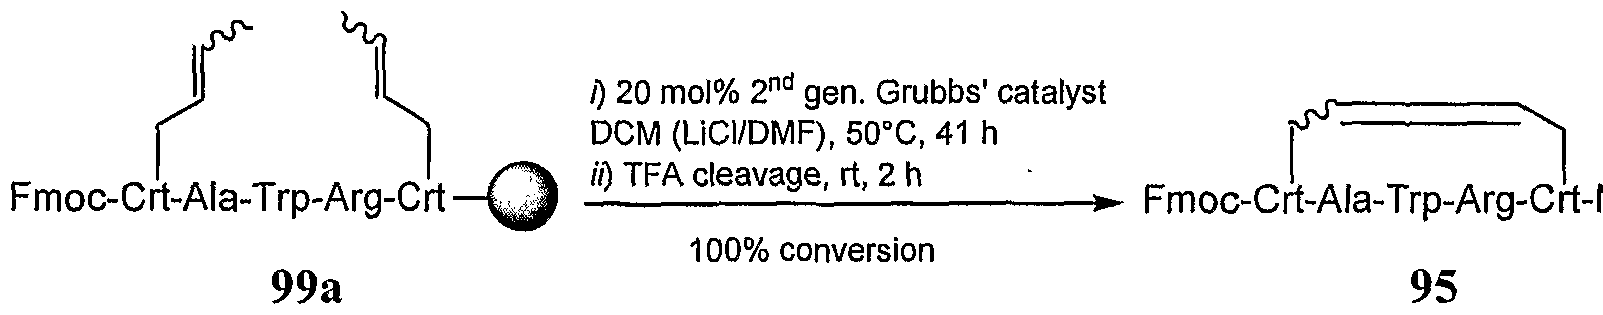 ruthenium catalyst metathesis Ruthenium-based catalysts for olefin metathesis display high activity in the presence of common functional groups and have been utilized in a variety of chemical.